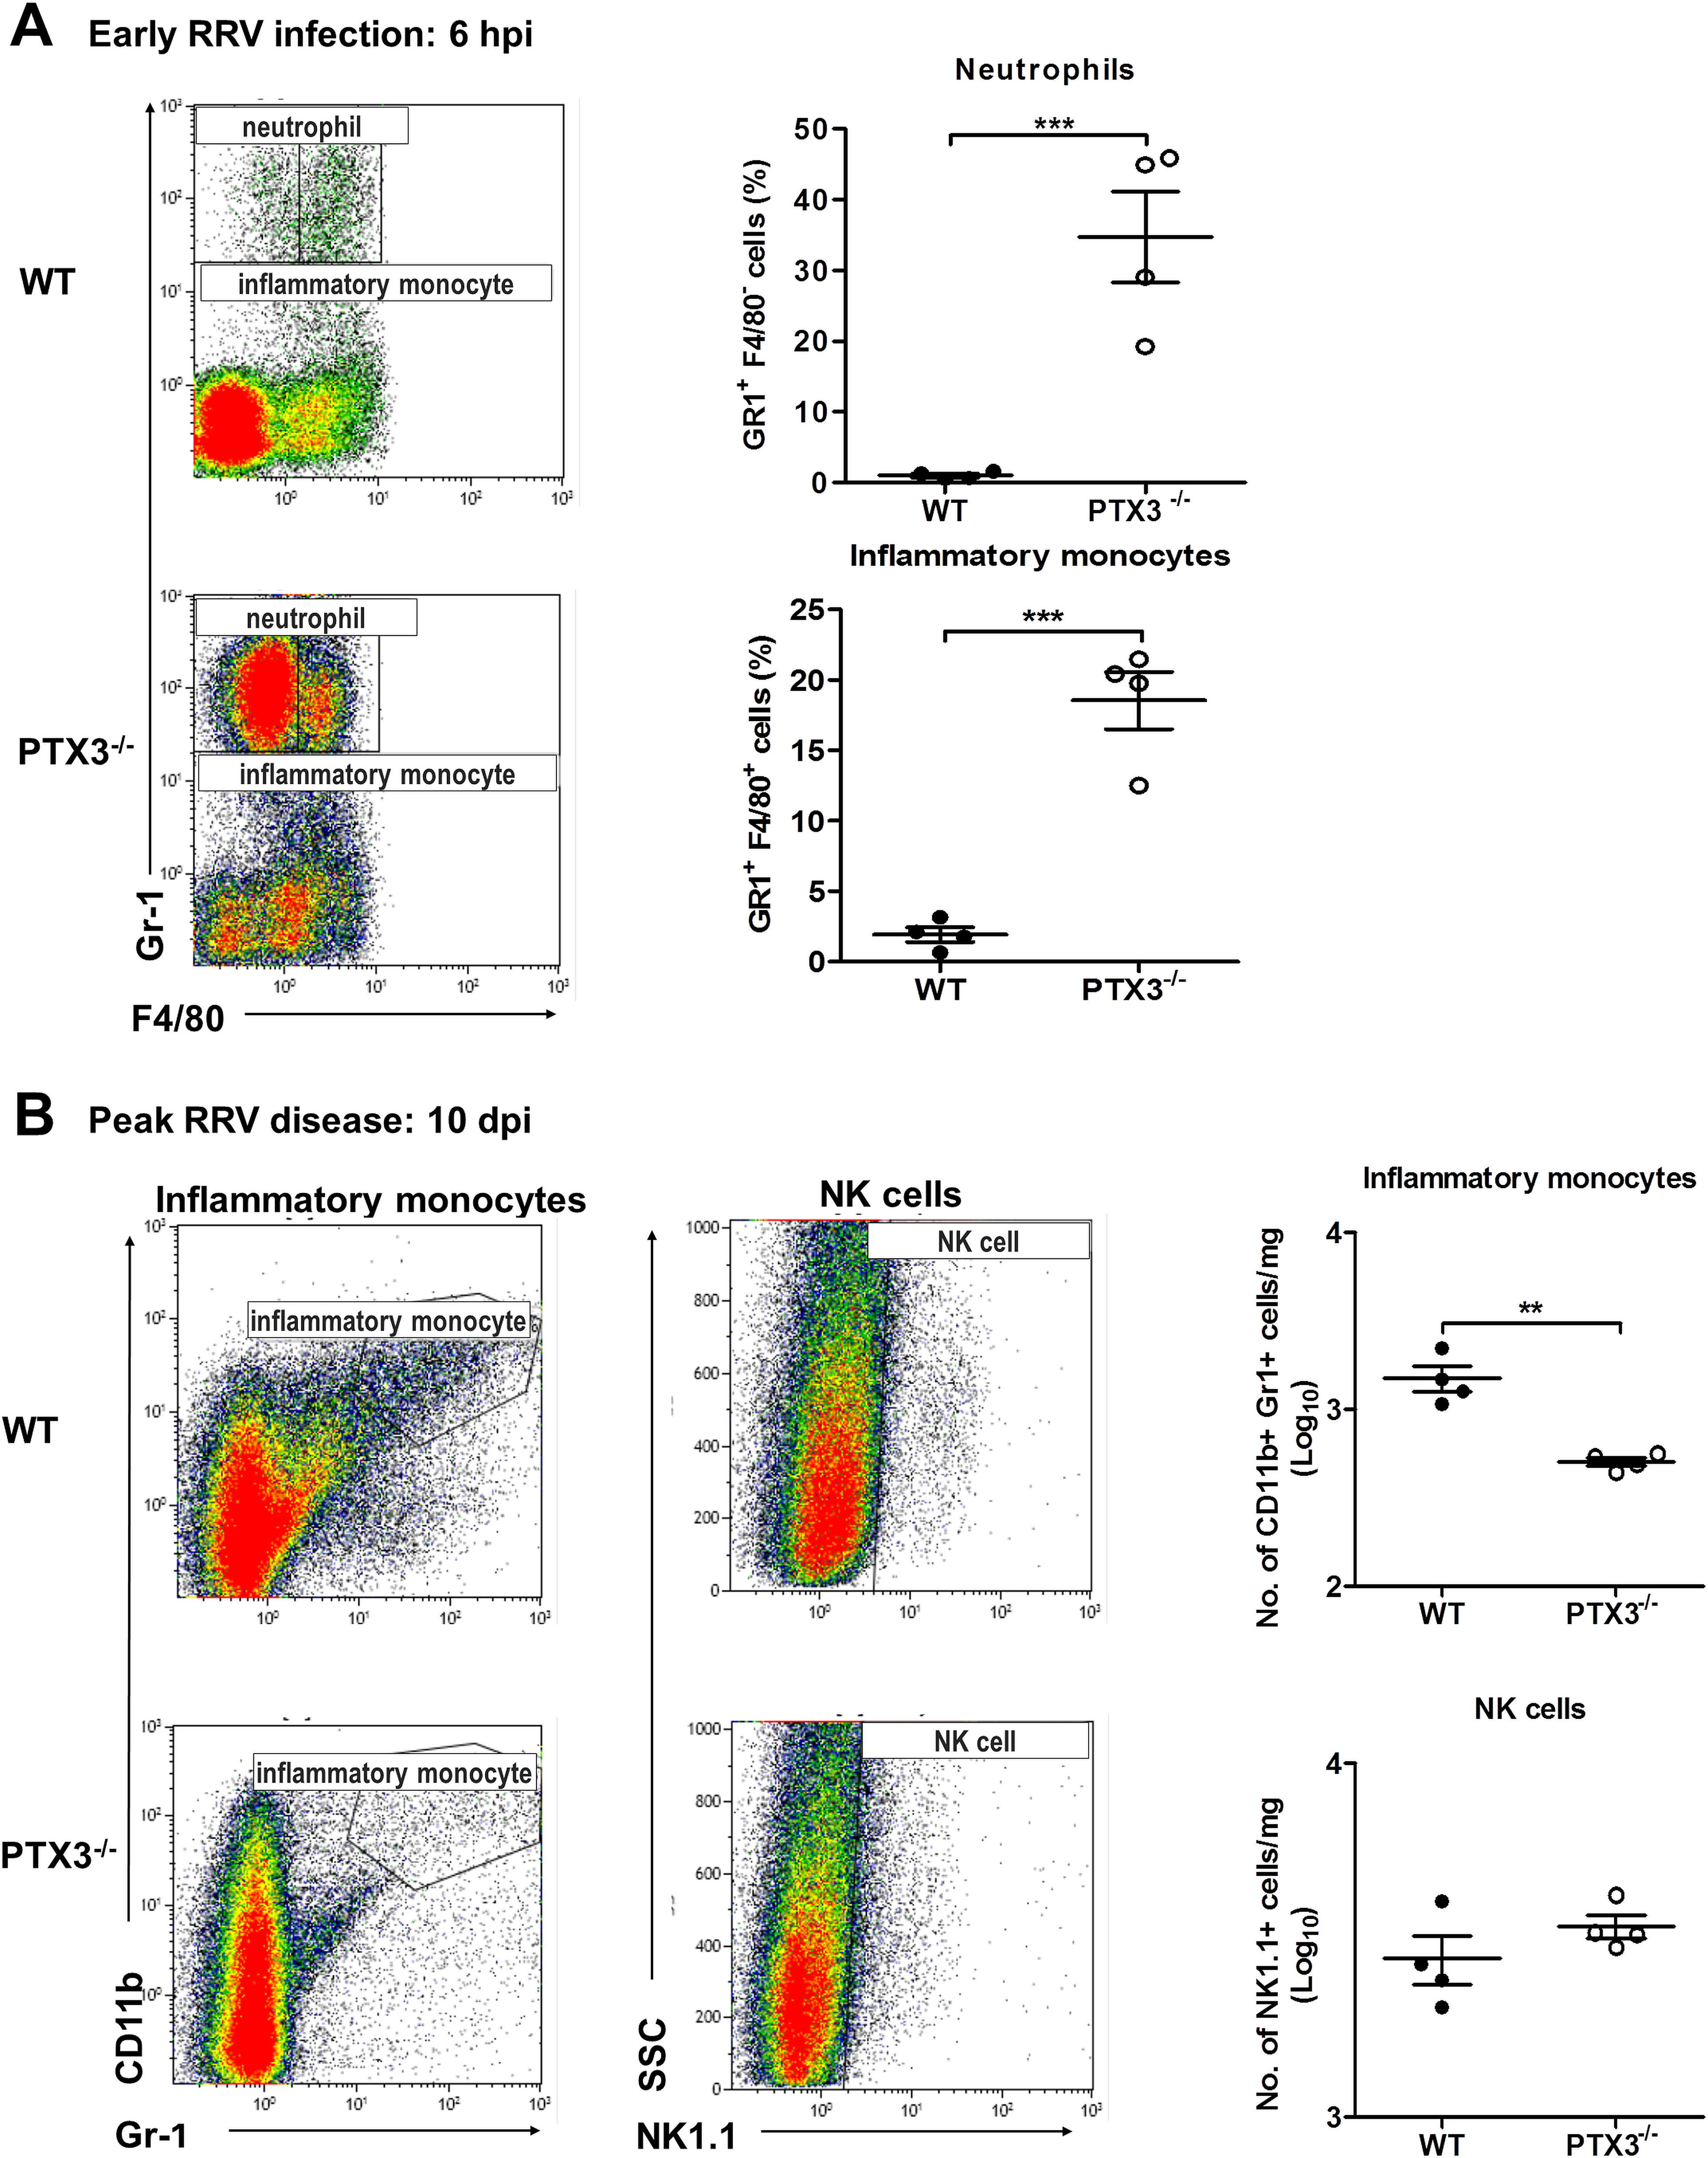 PTX3 delays cellular infiltration kinetics during RRV infection in mice.